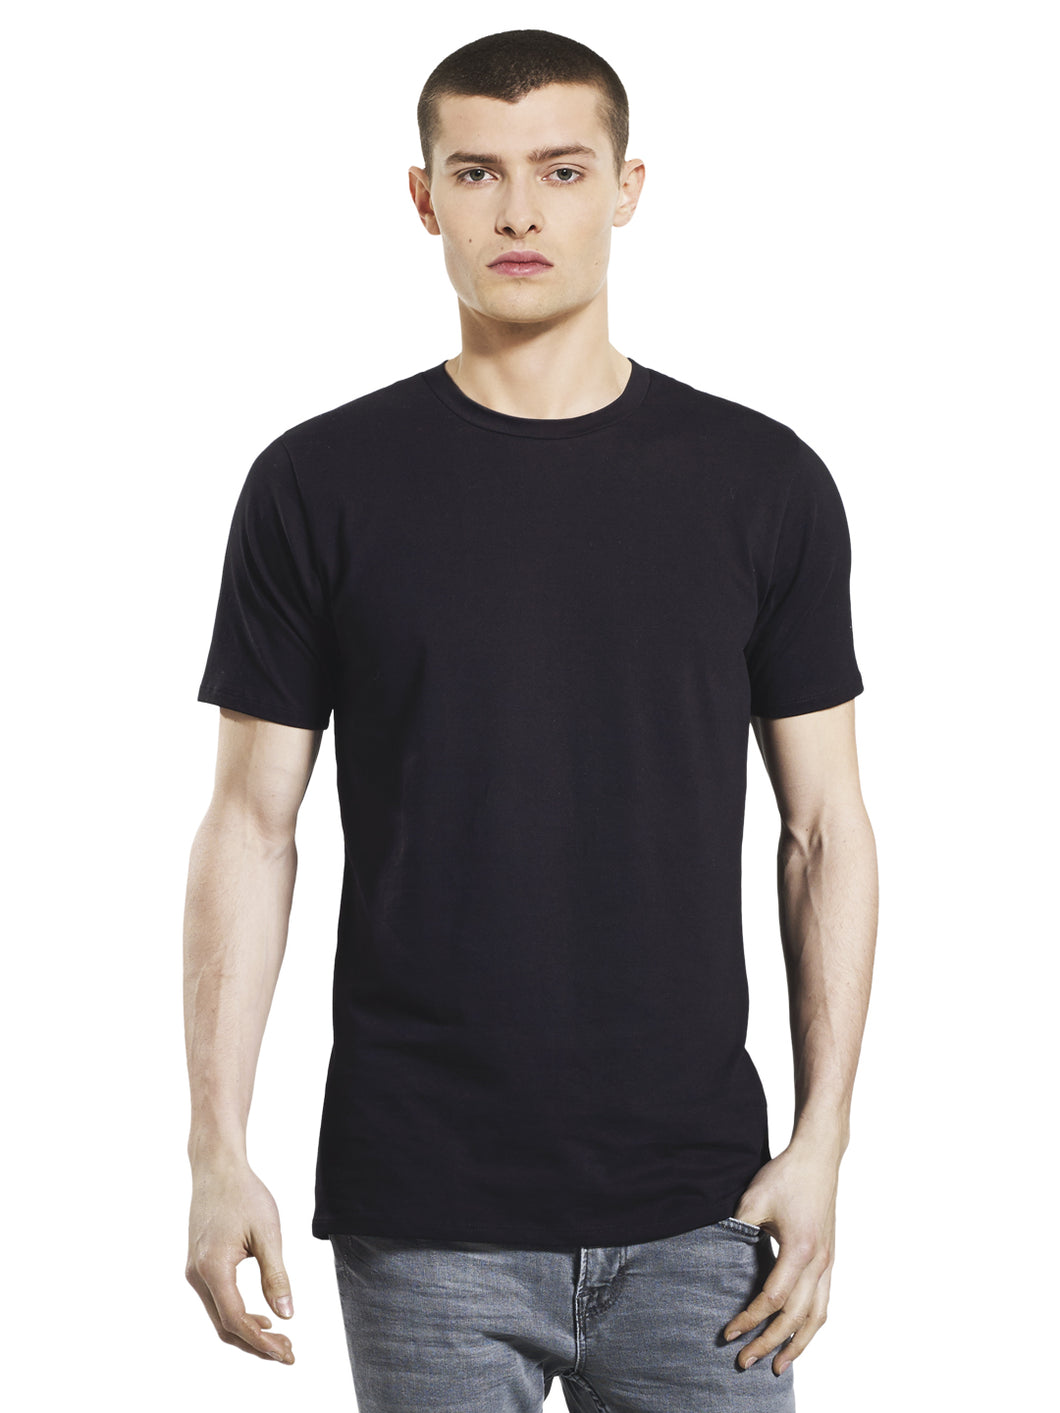 Stretch Organic Cotton T-shirt: Earth Positive